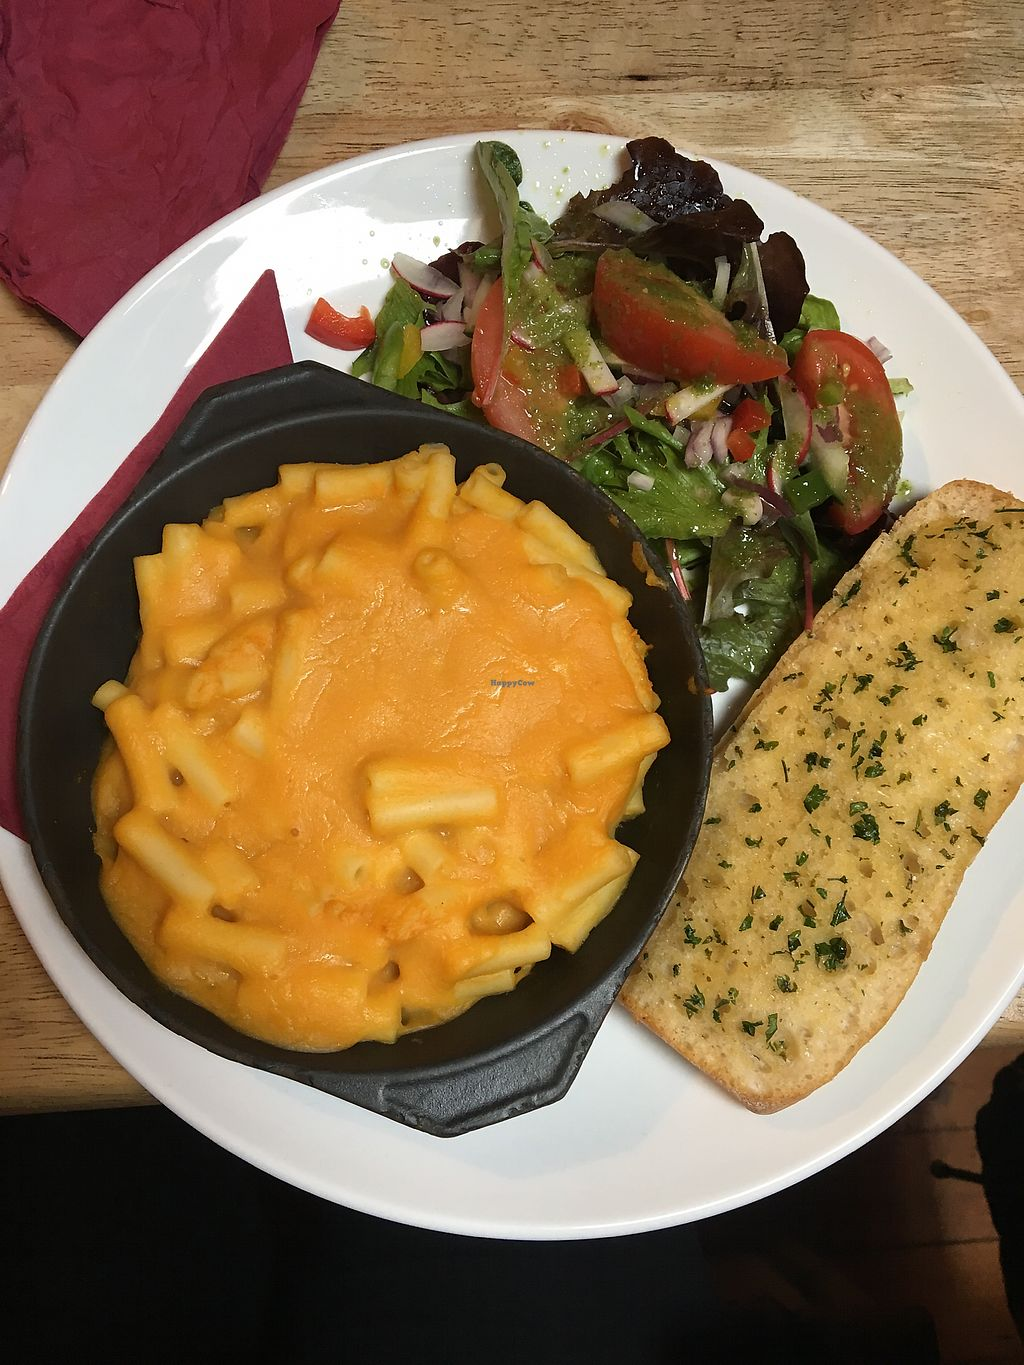 """Photo of Kat's Kitchen  by <a href=""""/members/profile/Bafodelic"""">Bafodelic</a> <br/>Tasteless mac and cheese <br/> September 28, 2017  - <a href='/contact/abuse/image/79734/309388'>Report</a>"""